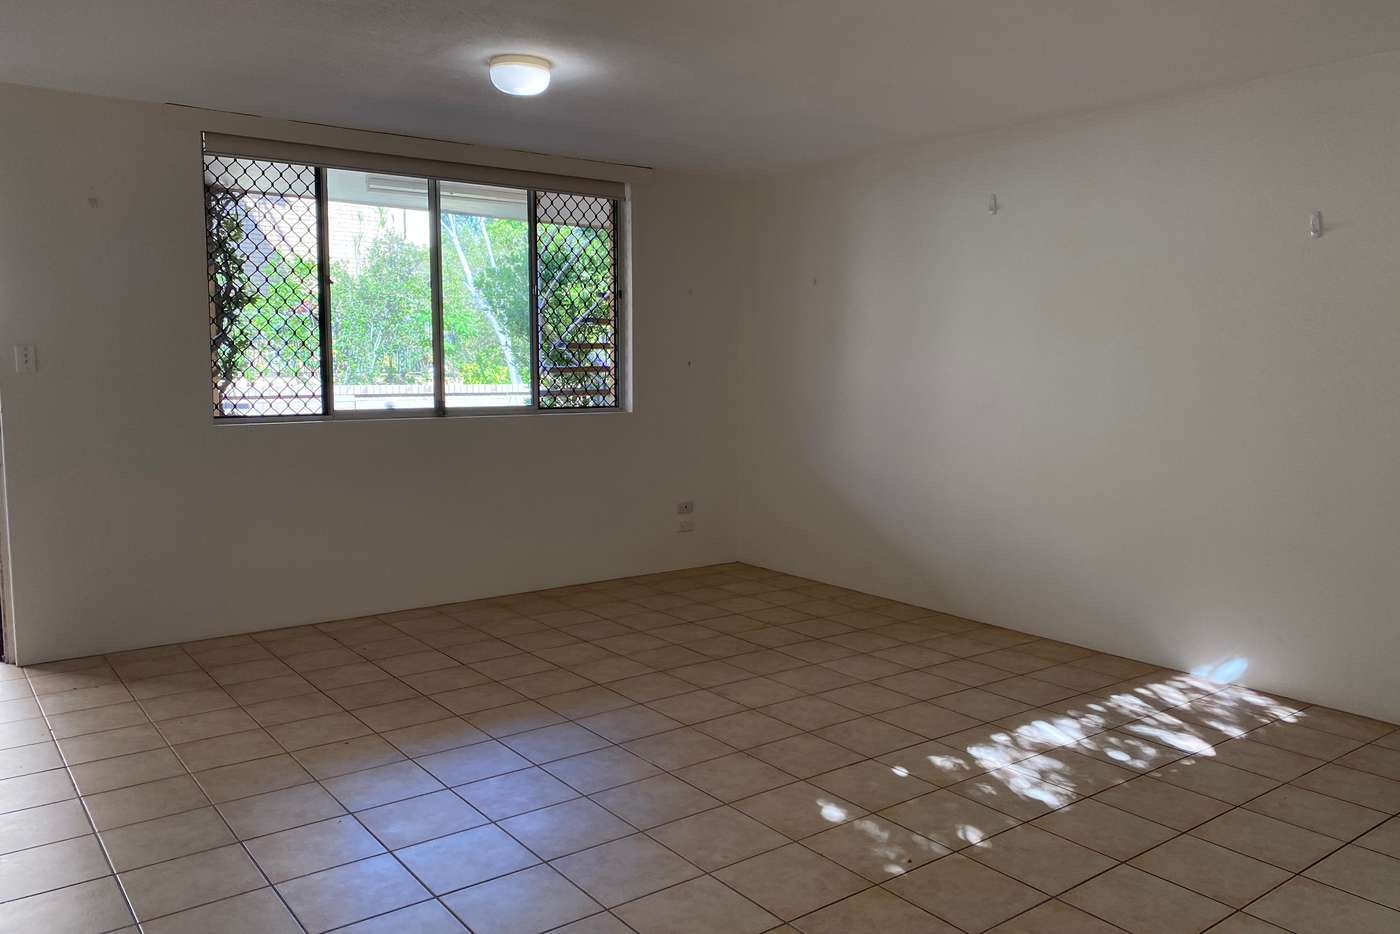 Sixth view of Homely unit listing, 2/8 Kalyan Street, Chevron Island QLD 4217